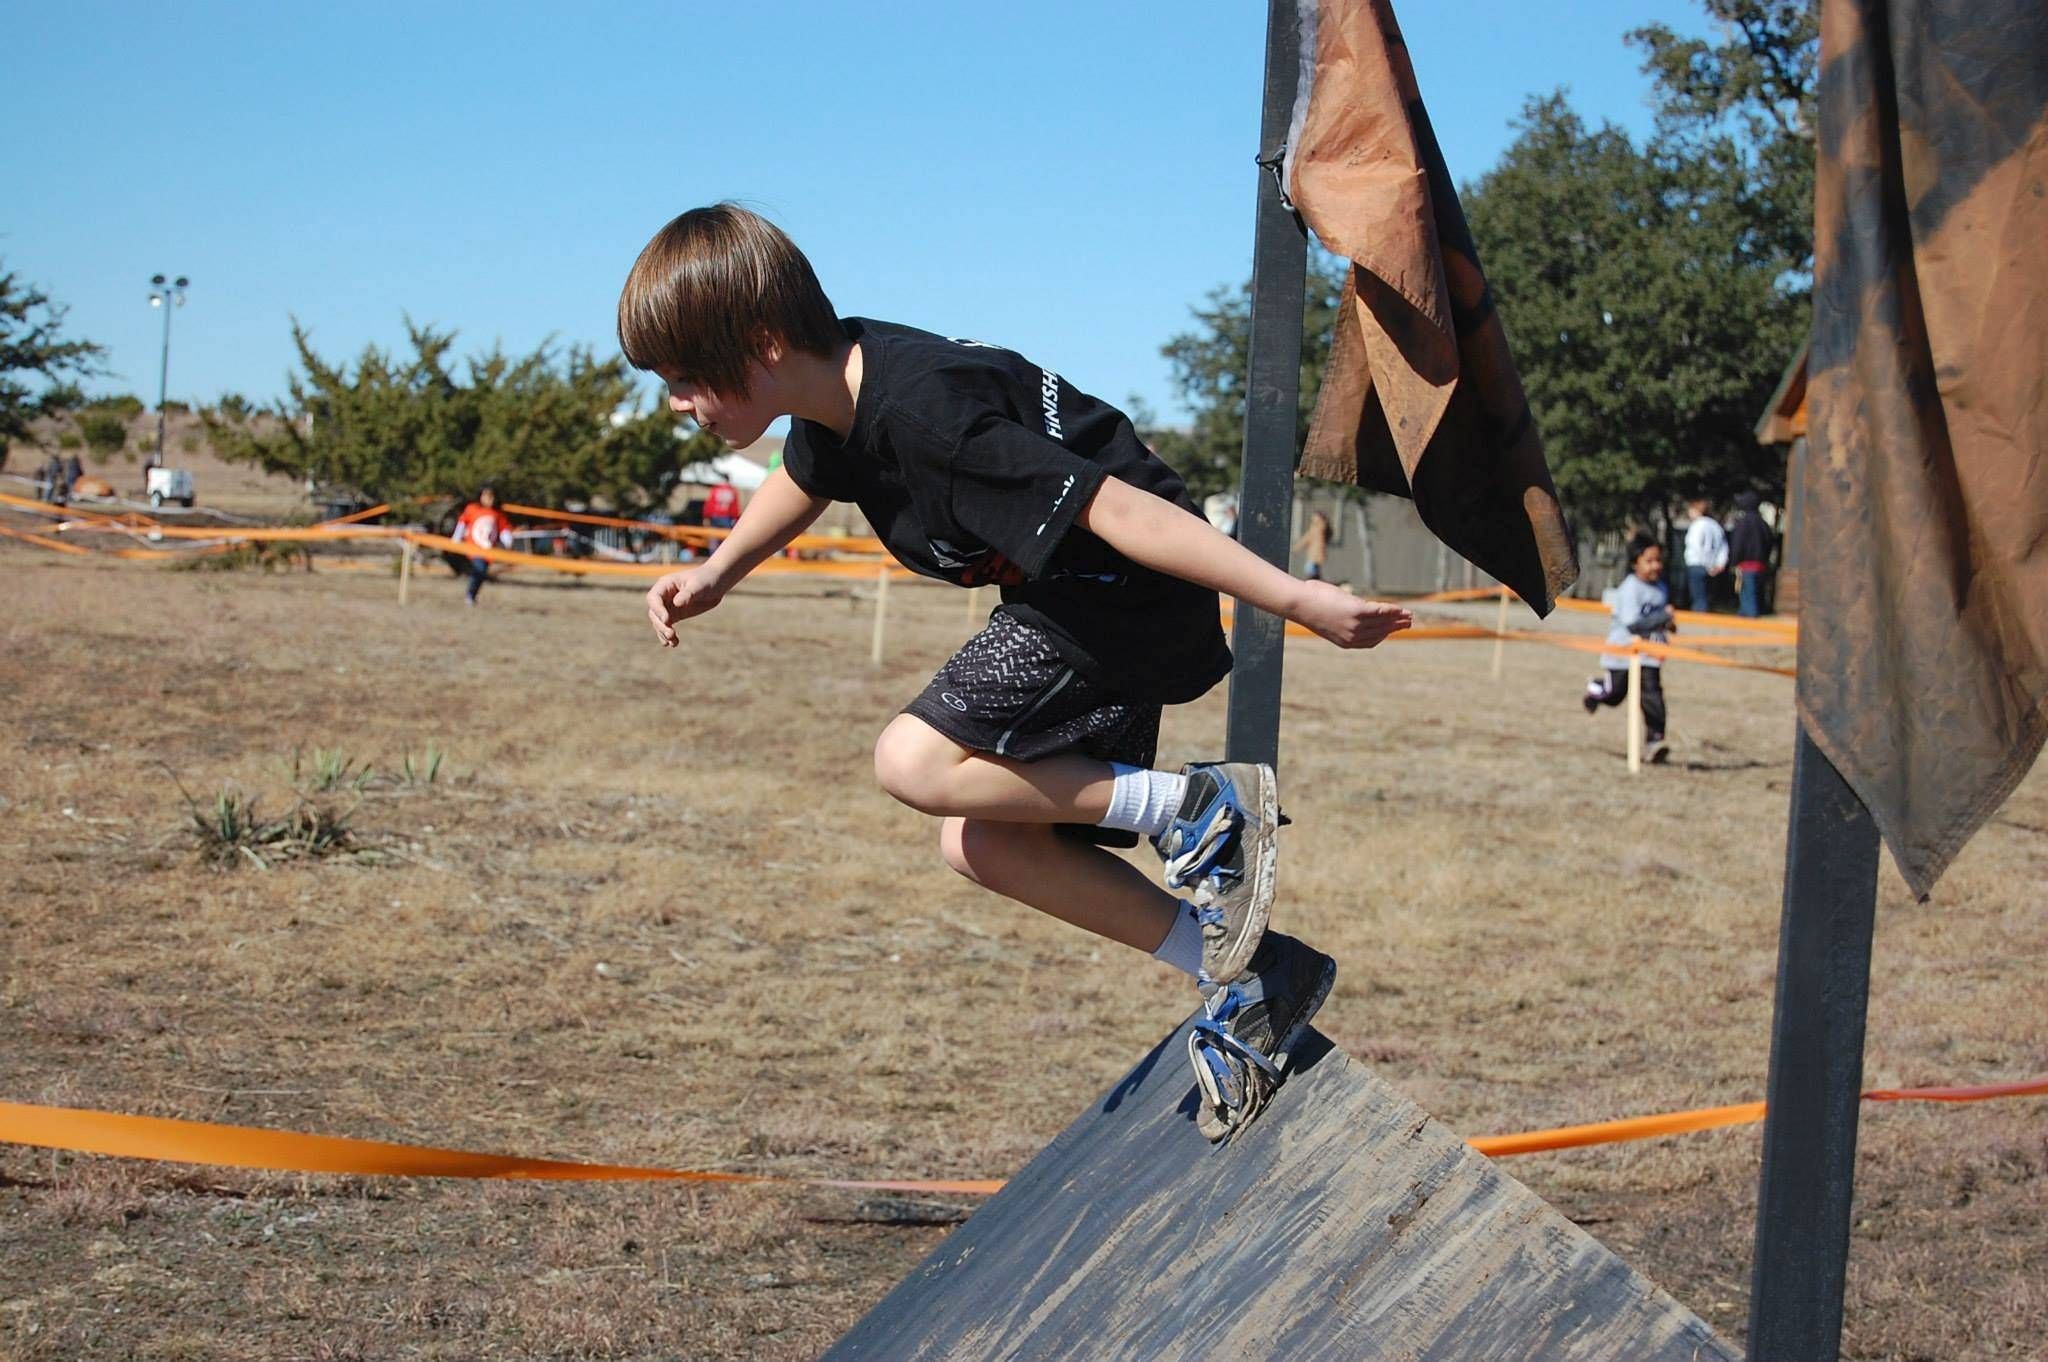 A new obstacle race coming Aug. 2 to Naperville will be just for kids — including those with special needs — teens and their parents. The course will be under the umbrella of the popular Spartan Race series, which includes an event each year in Marseilles.